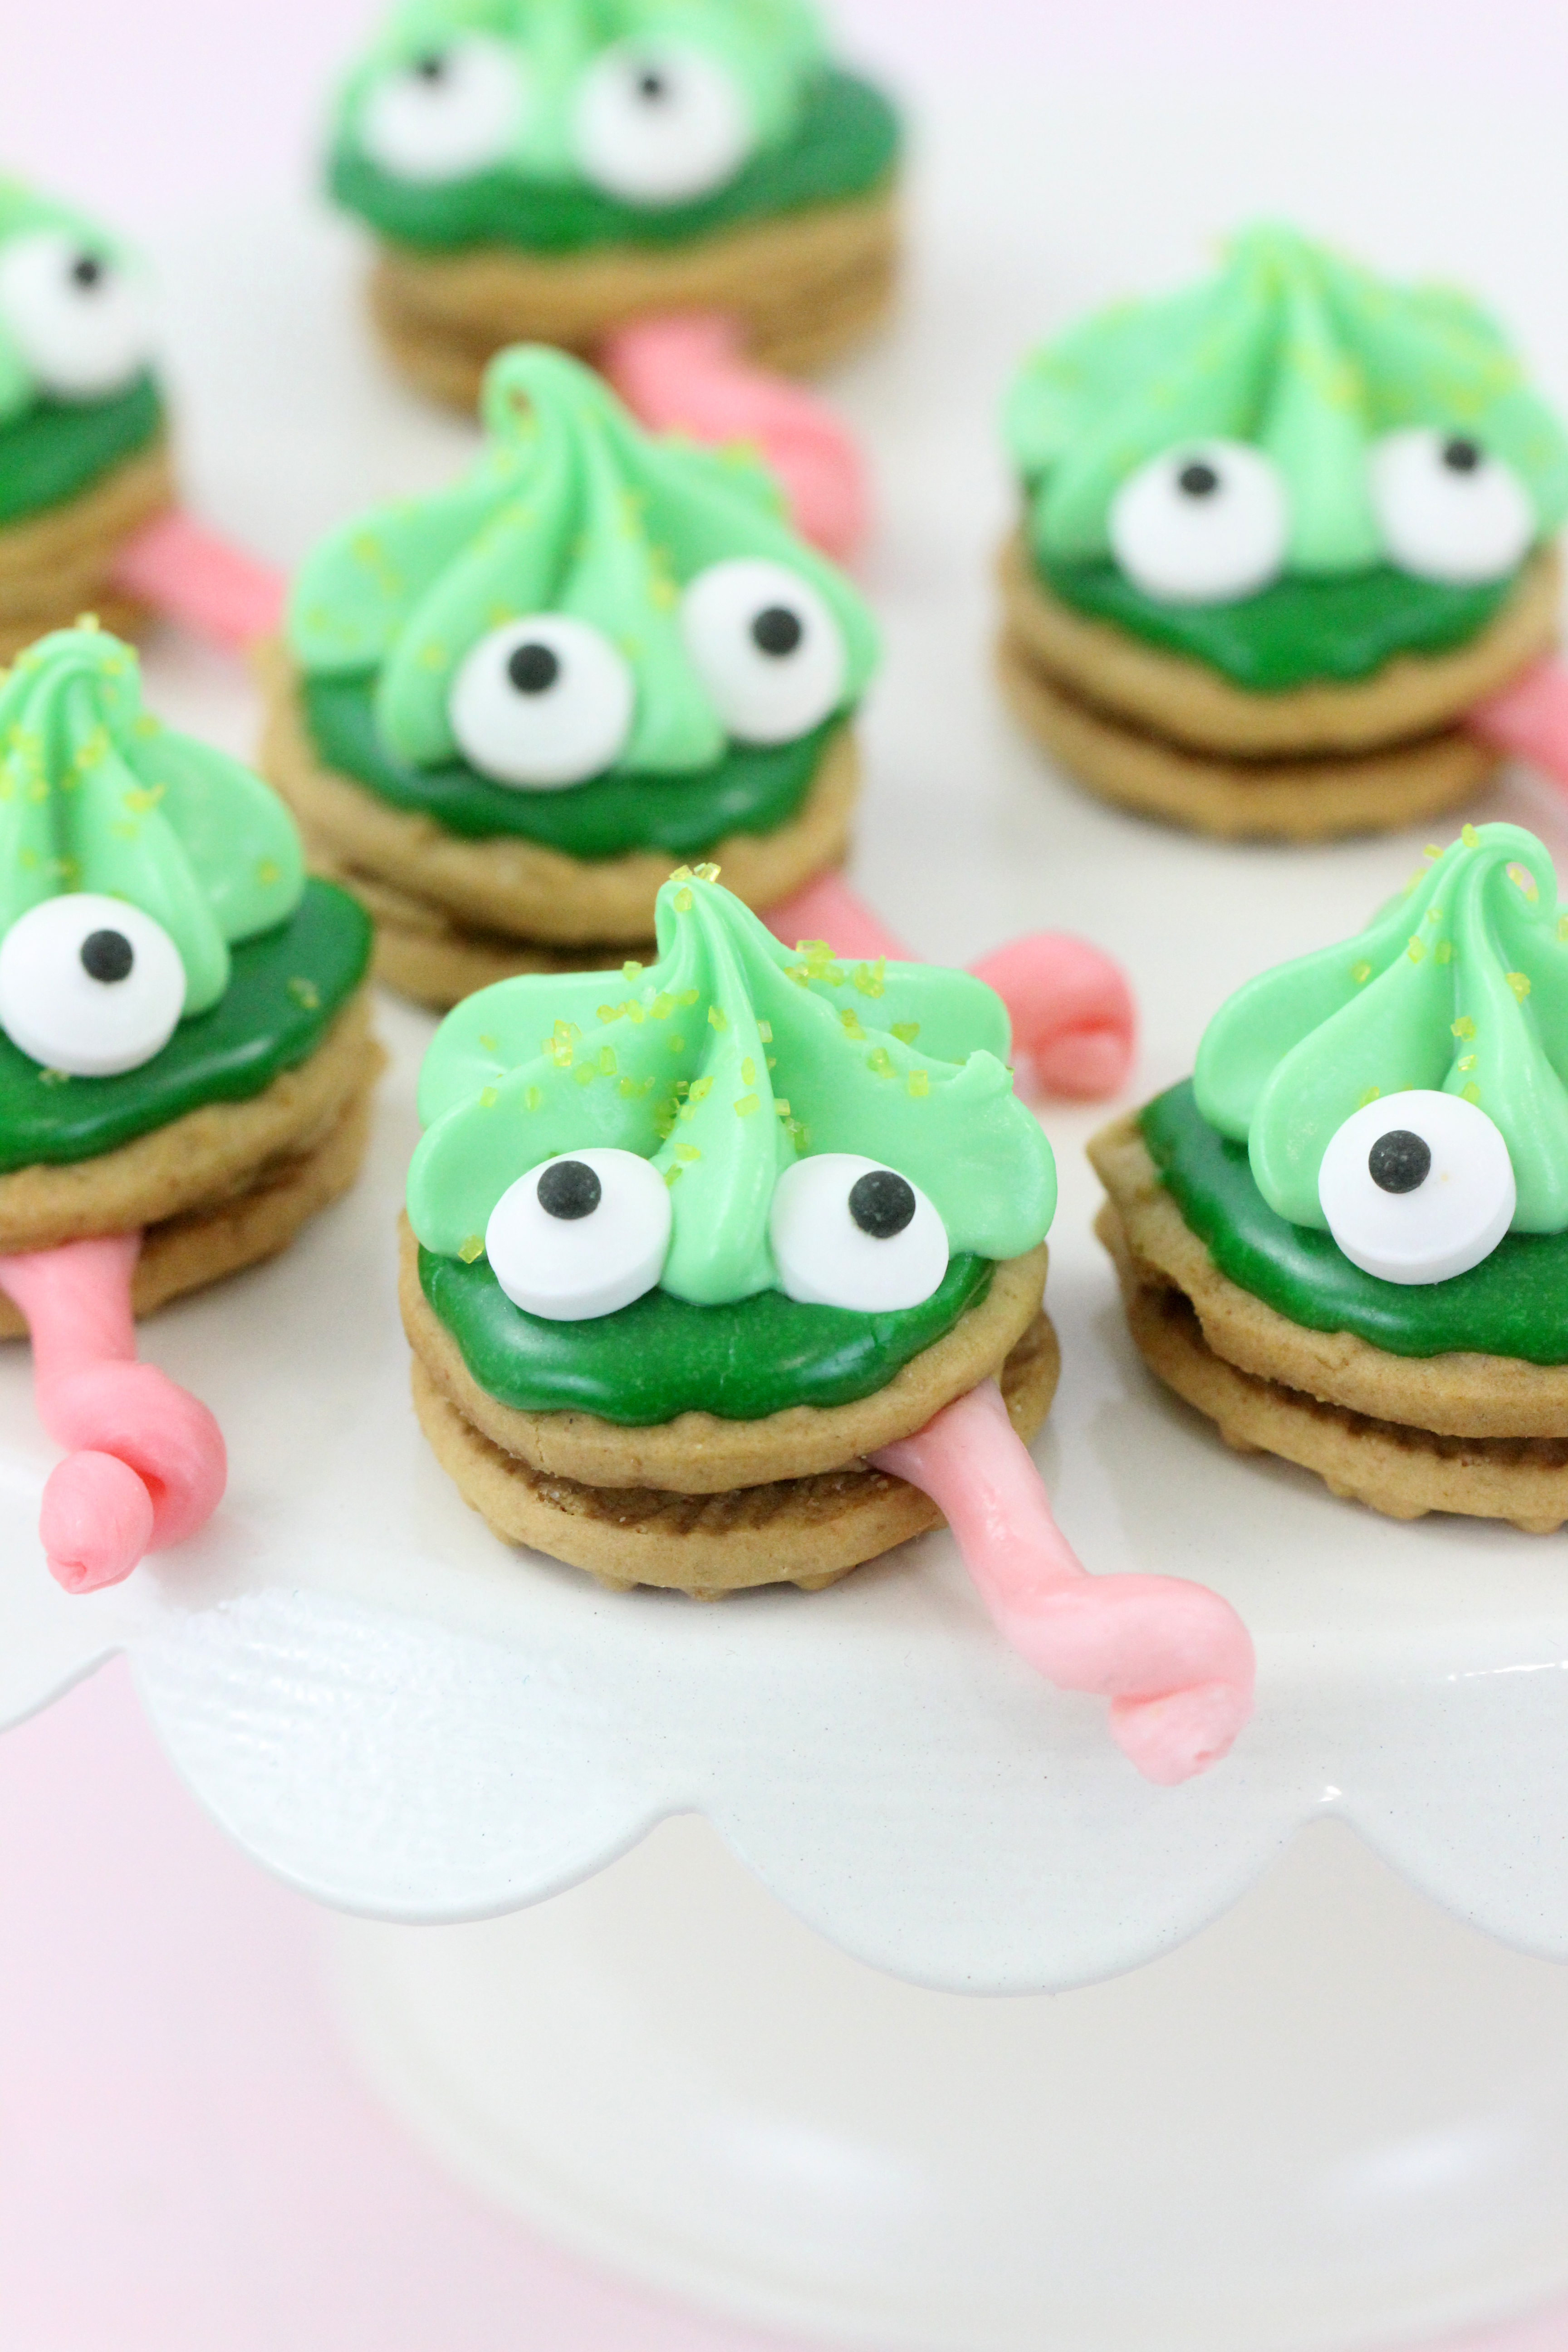 Chameleon cookies, perfect for themed parties and to get excited about The Wild Life movie. Easy to make with only a handful of easy to find ingredients.